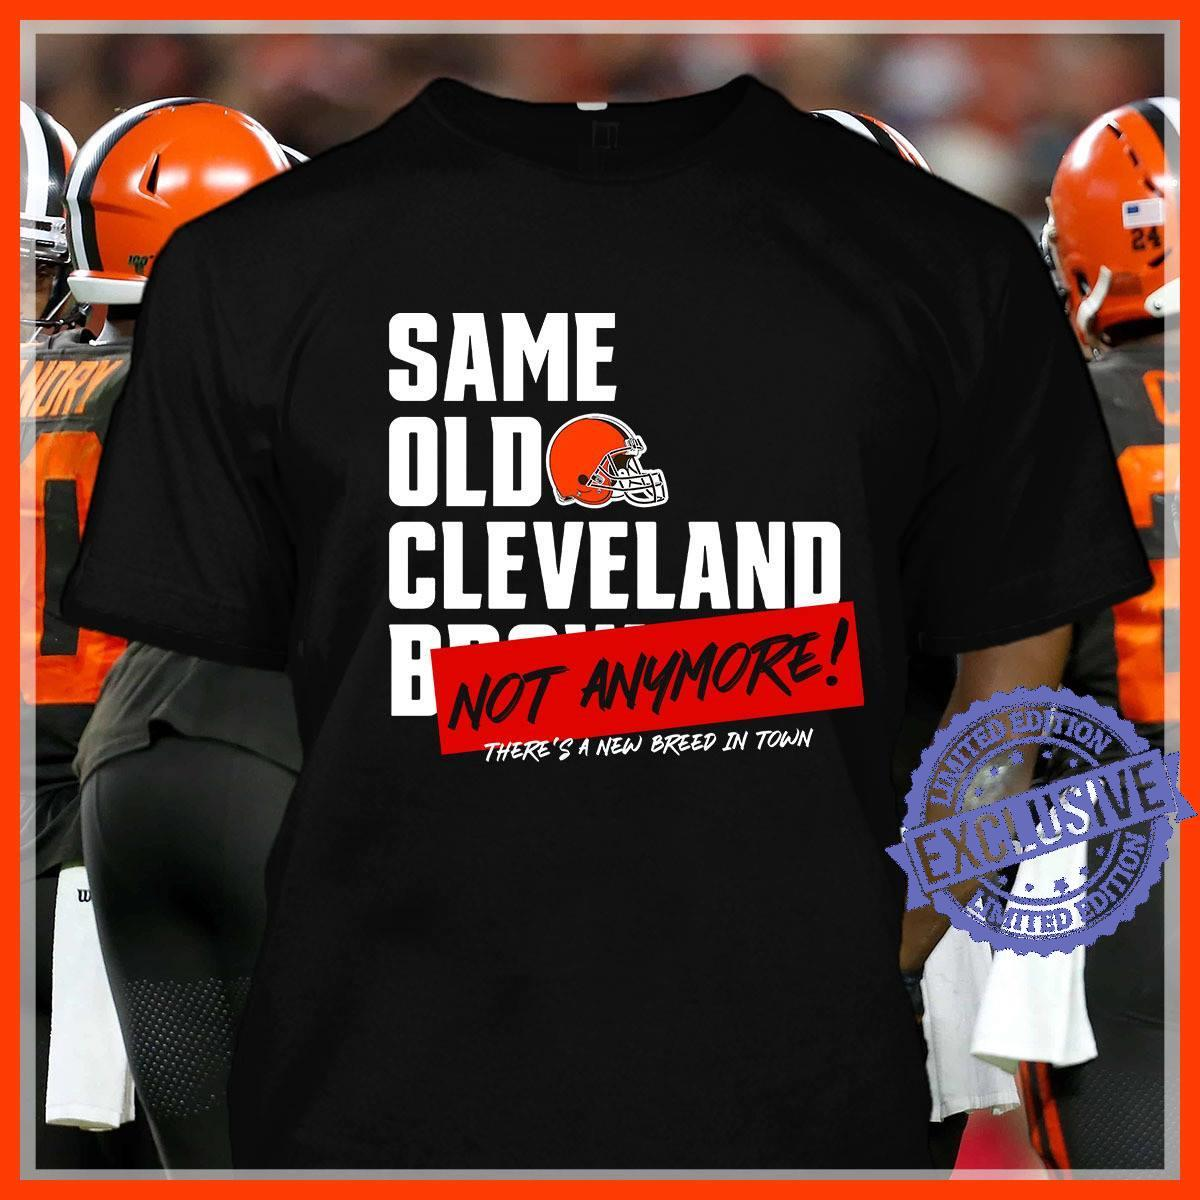 Same old cleveland not anymore there's new breed in town shirt